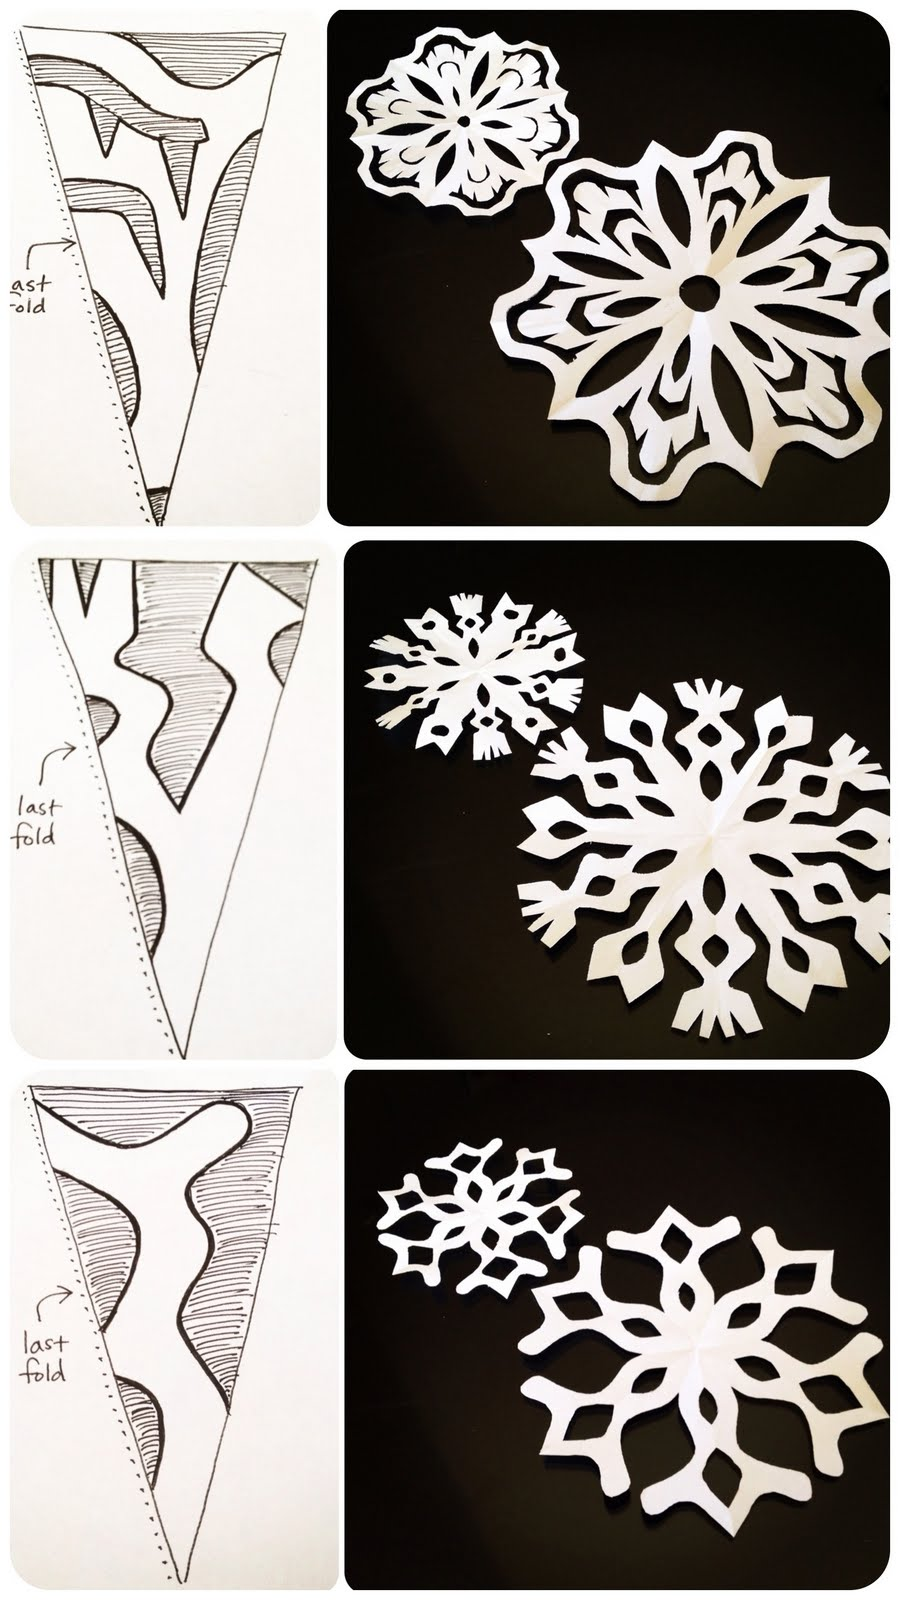 pics for simple snowflakes pattern to cut